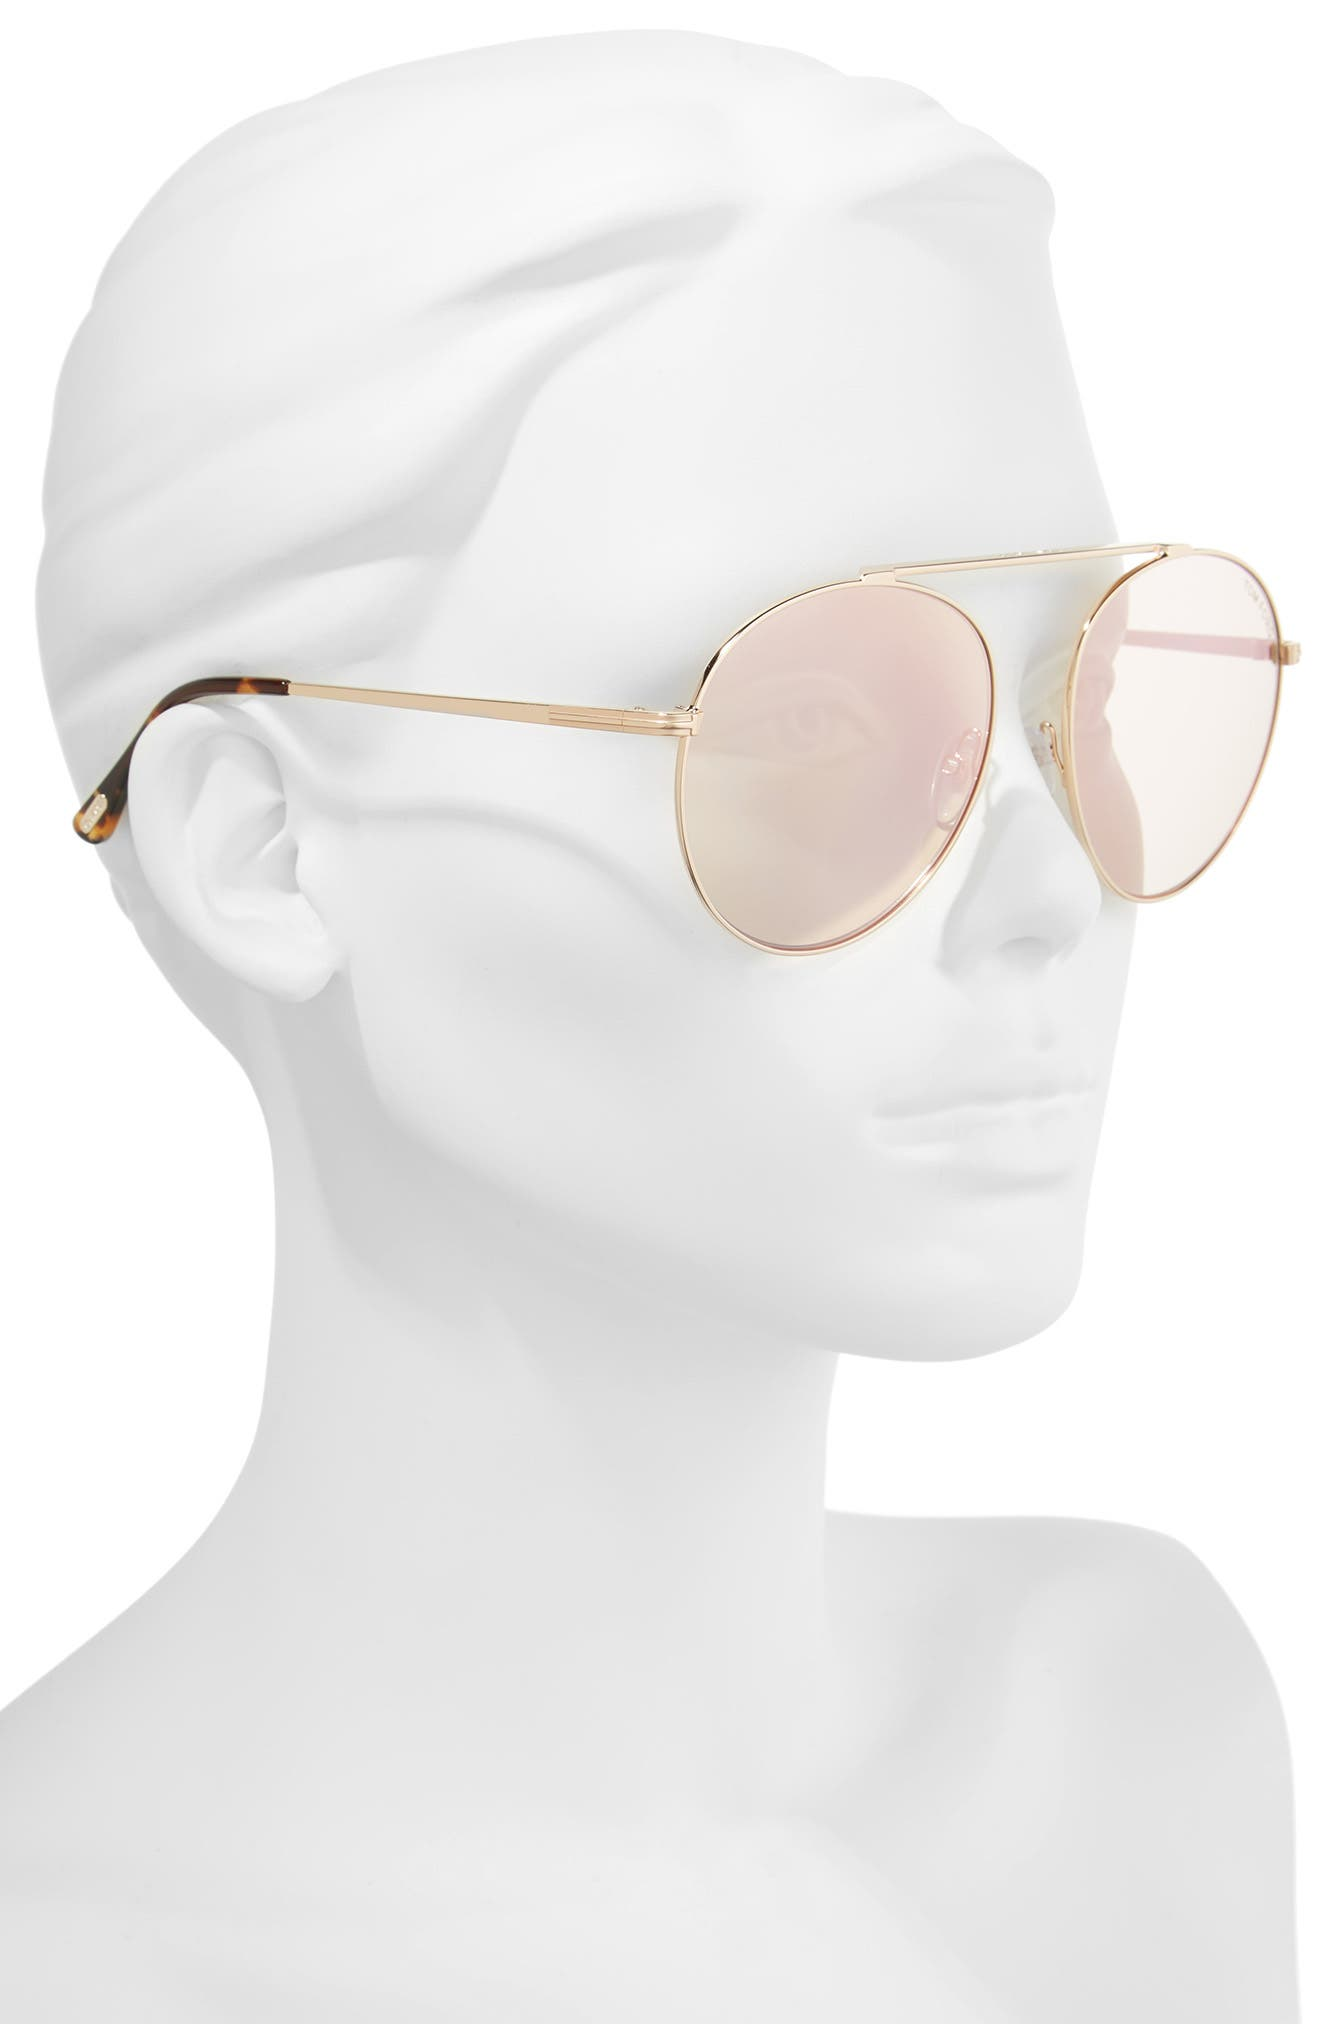 Alternate Image 2  - Tom Ford Simone 58mm Gradient Mirrored Round Sunglasses (Nordstrom Exclusive)